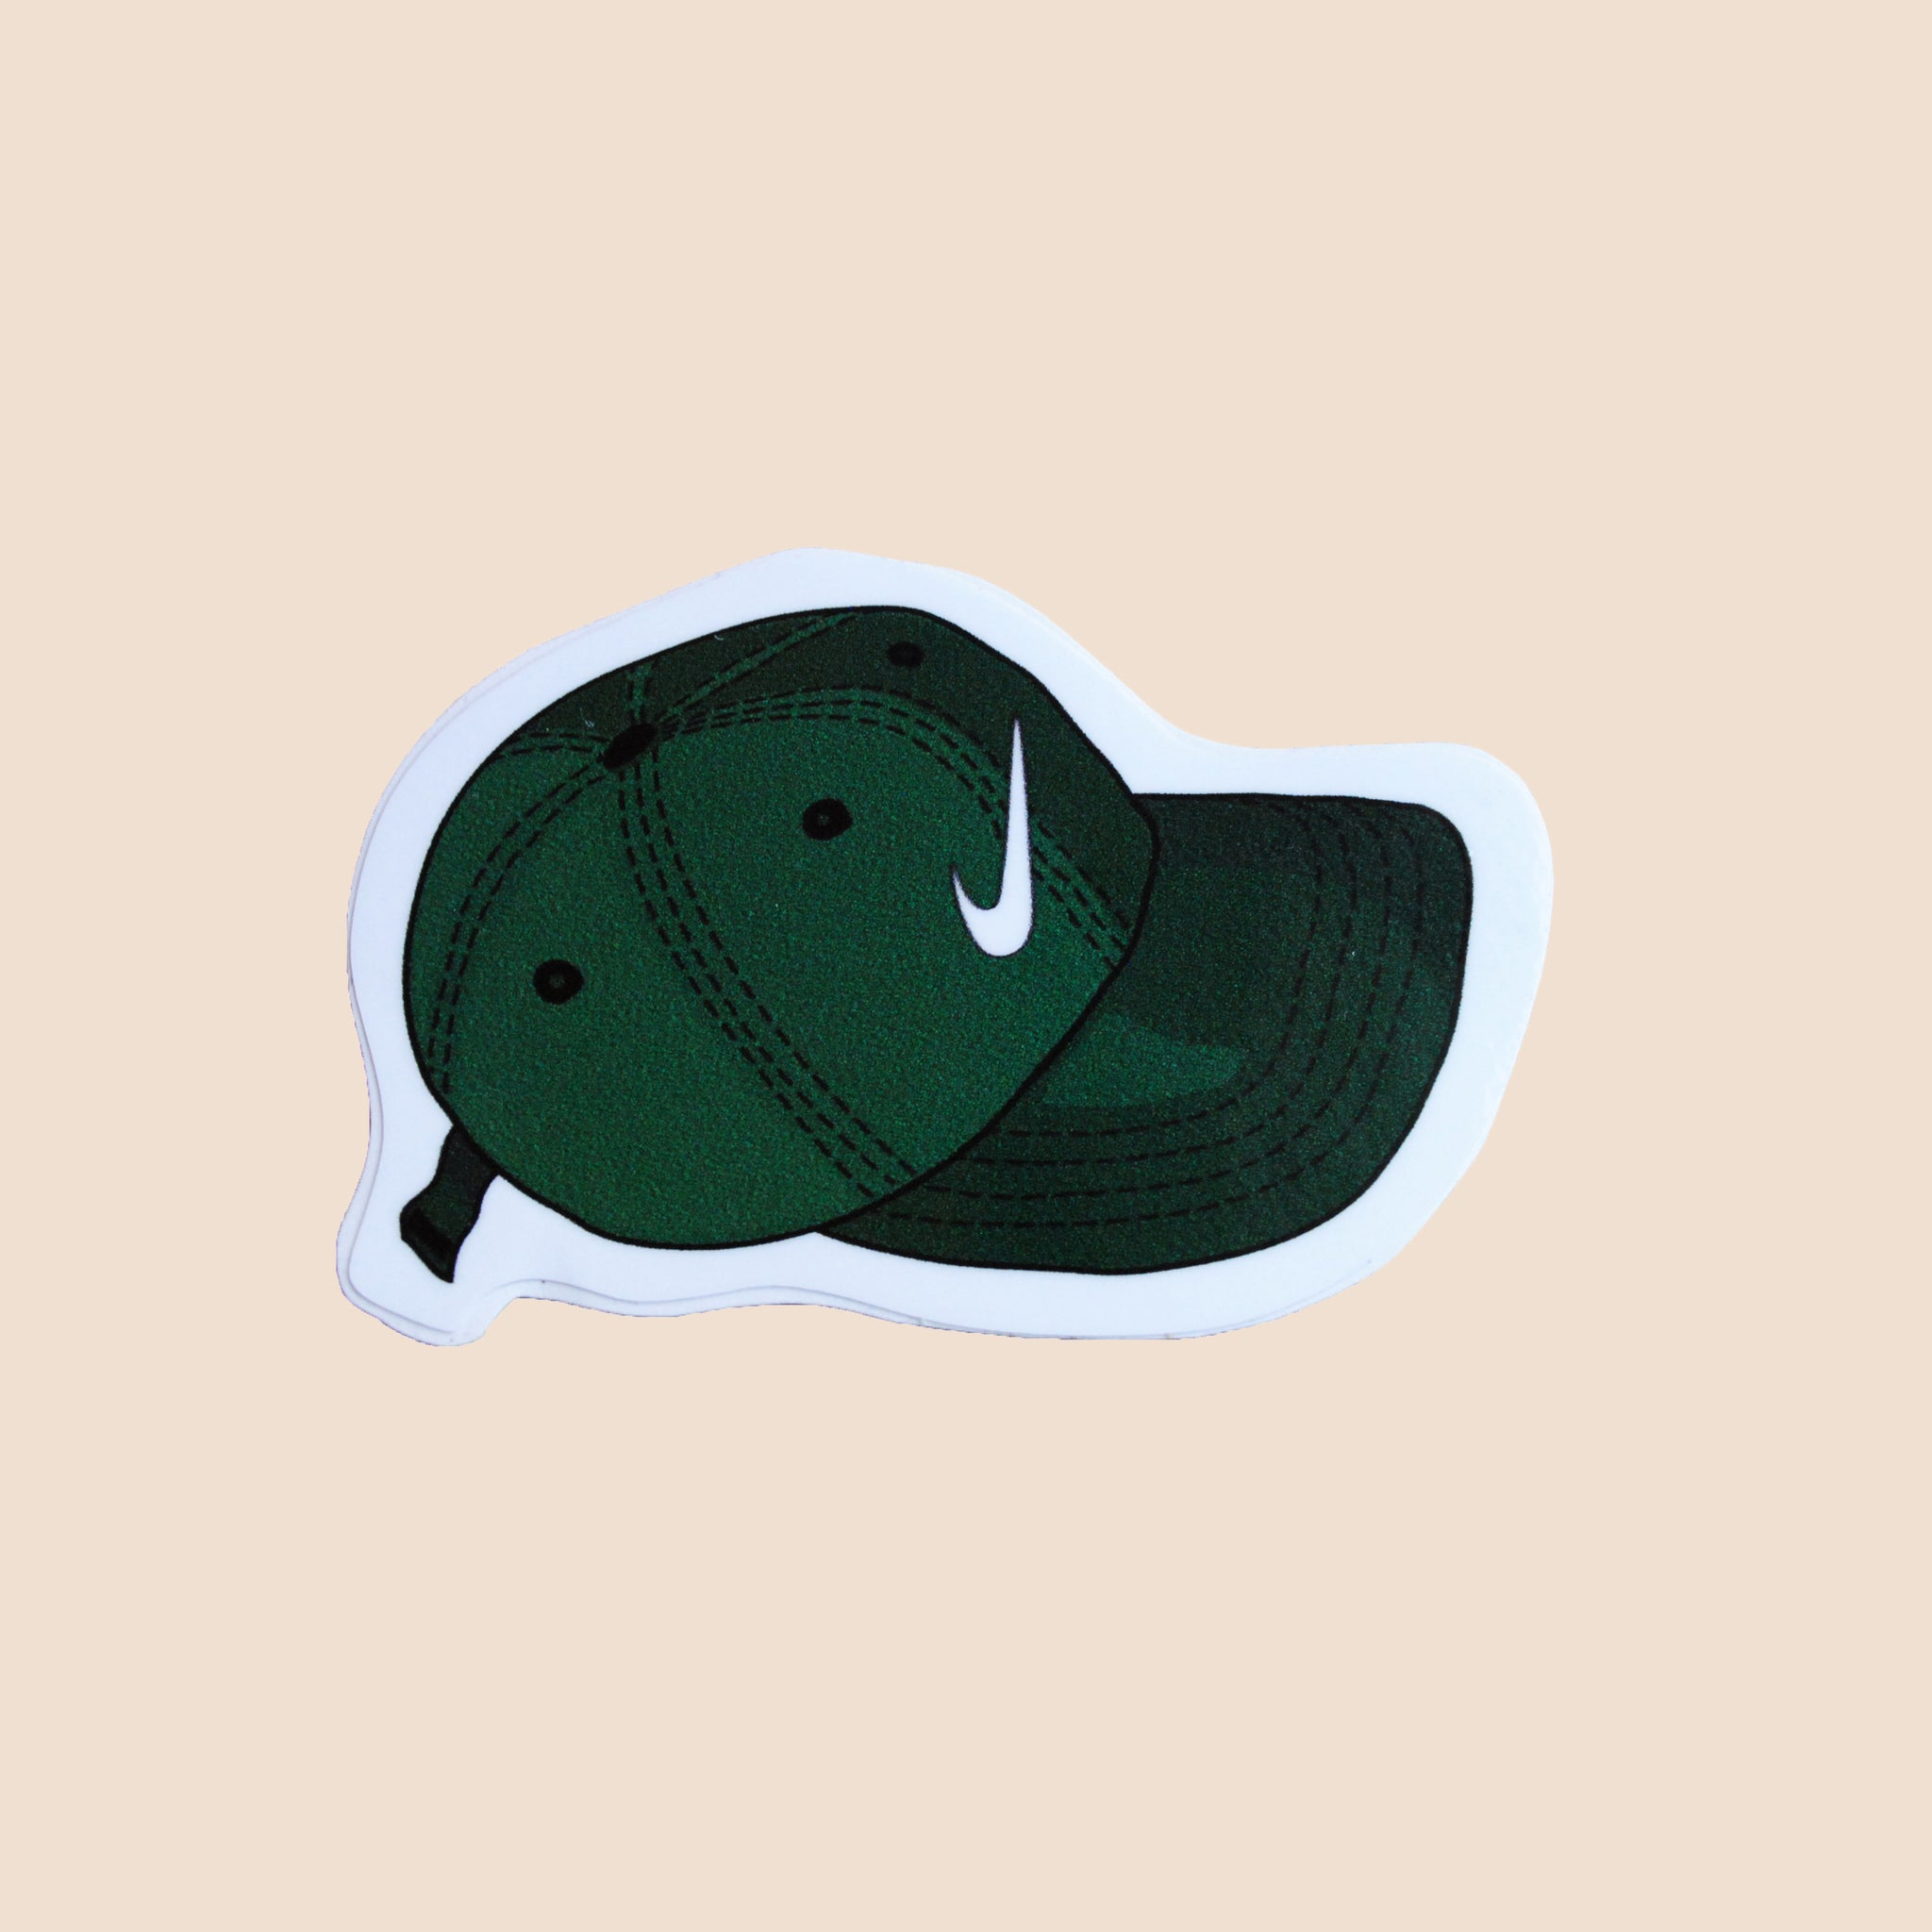 nike cap green laptop sticker